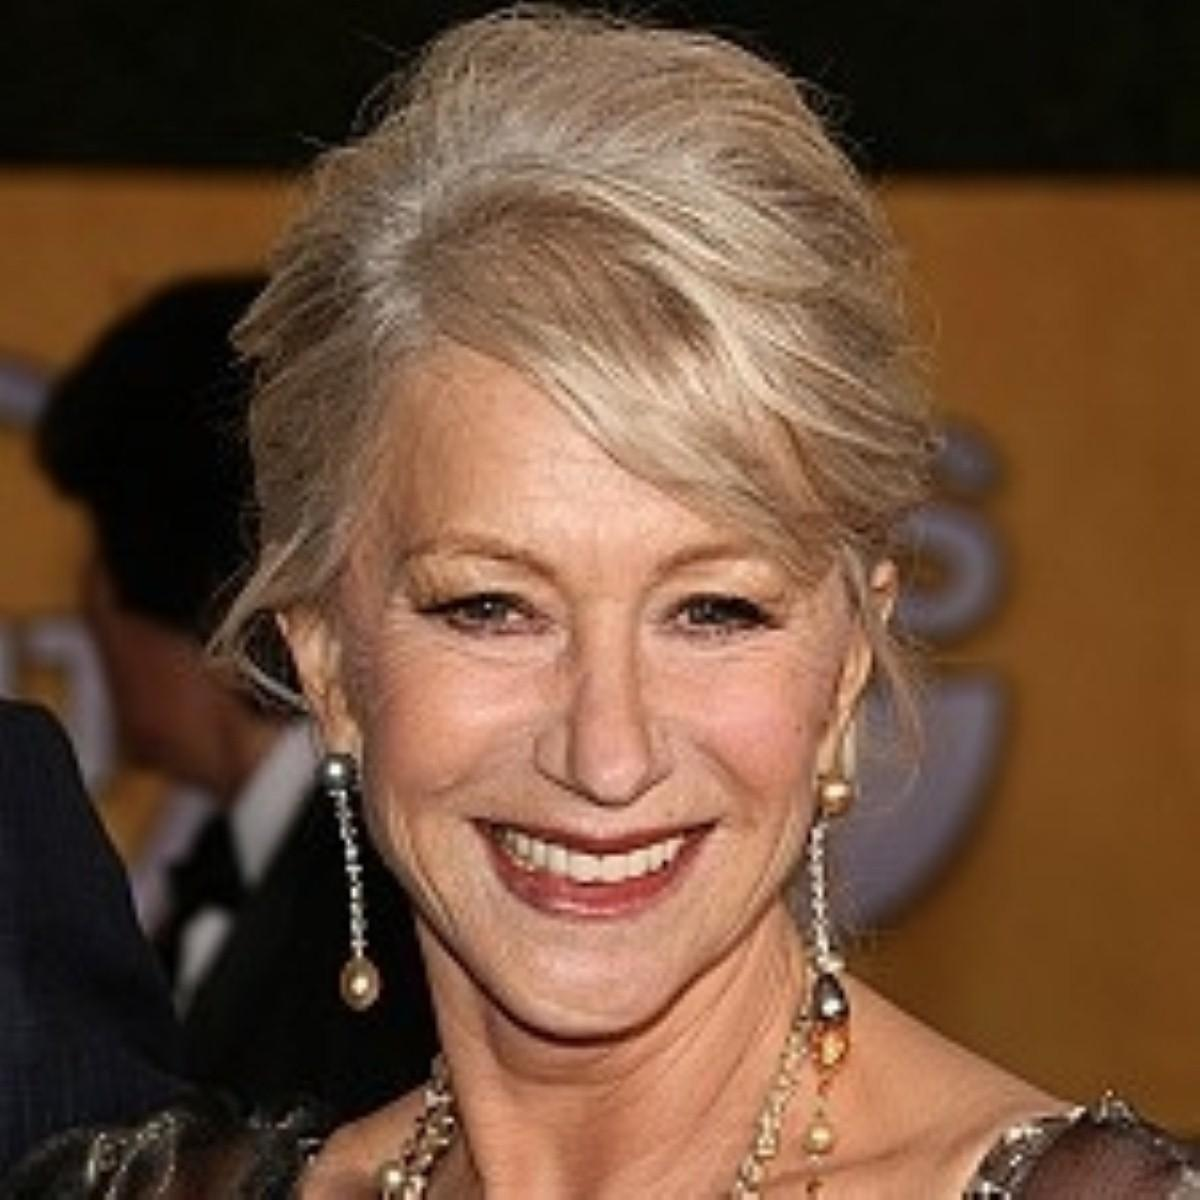 Helen Mirren calls for change in attitude towards Parkinson's